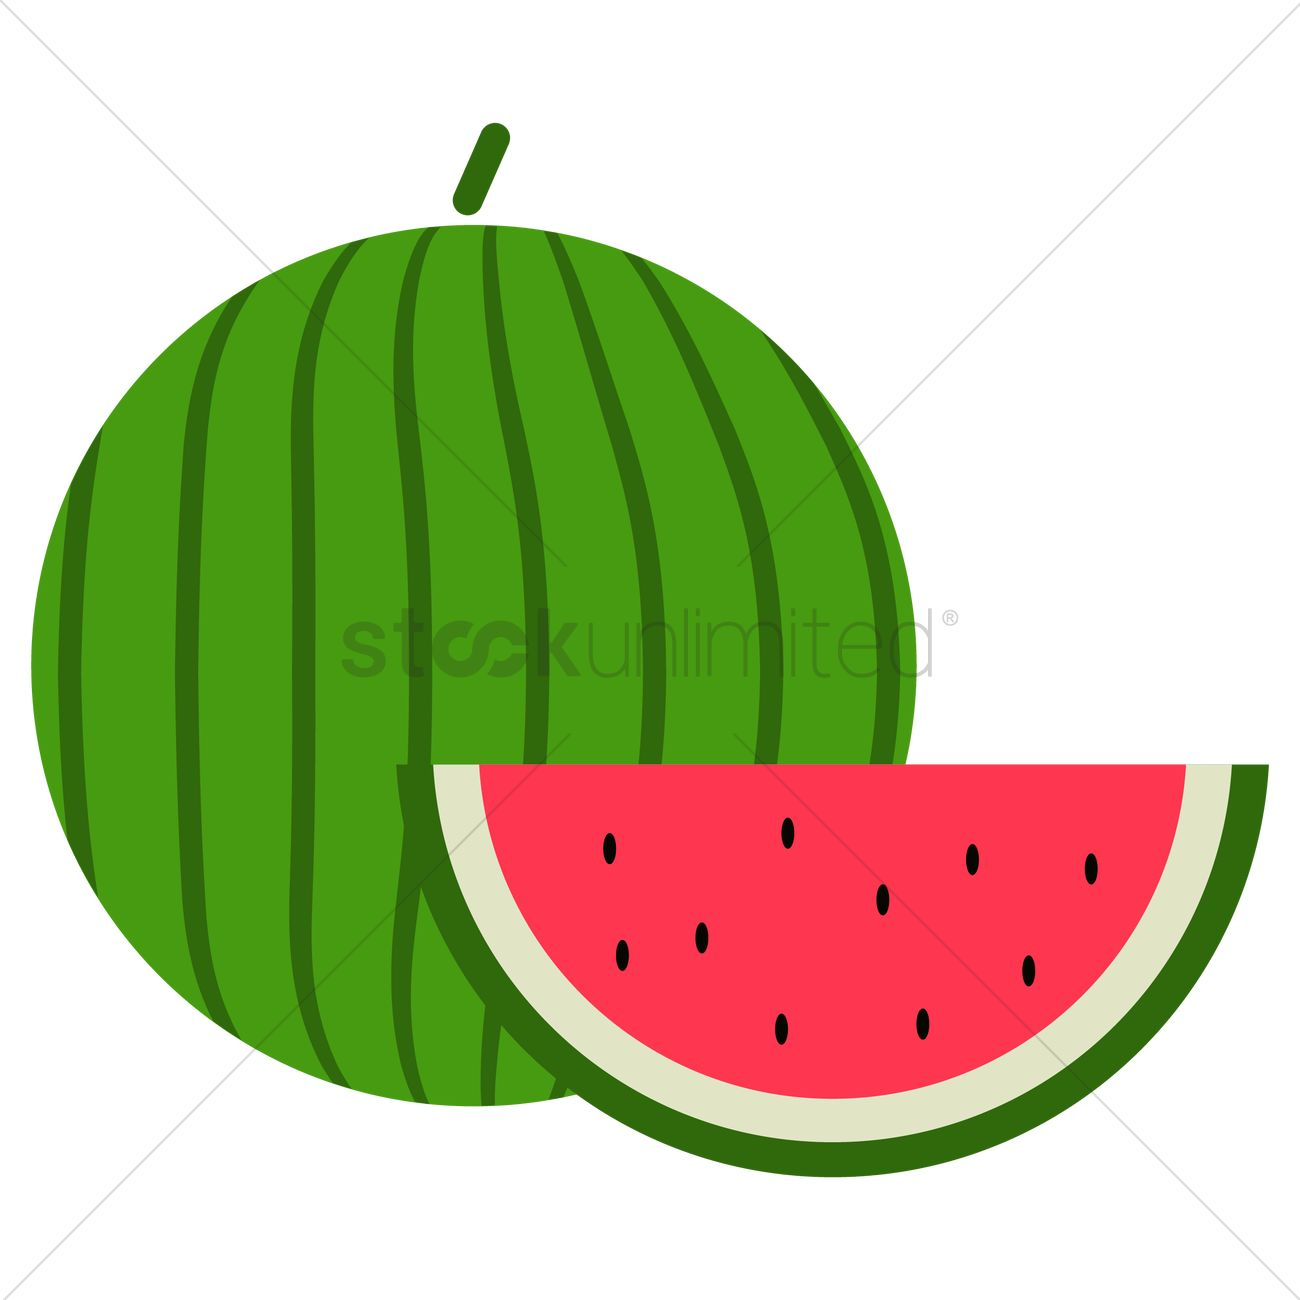 free watermelon vector image 1271171 stockunlimited rh stockunlimited com watermelon vector art watermelon vector background